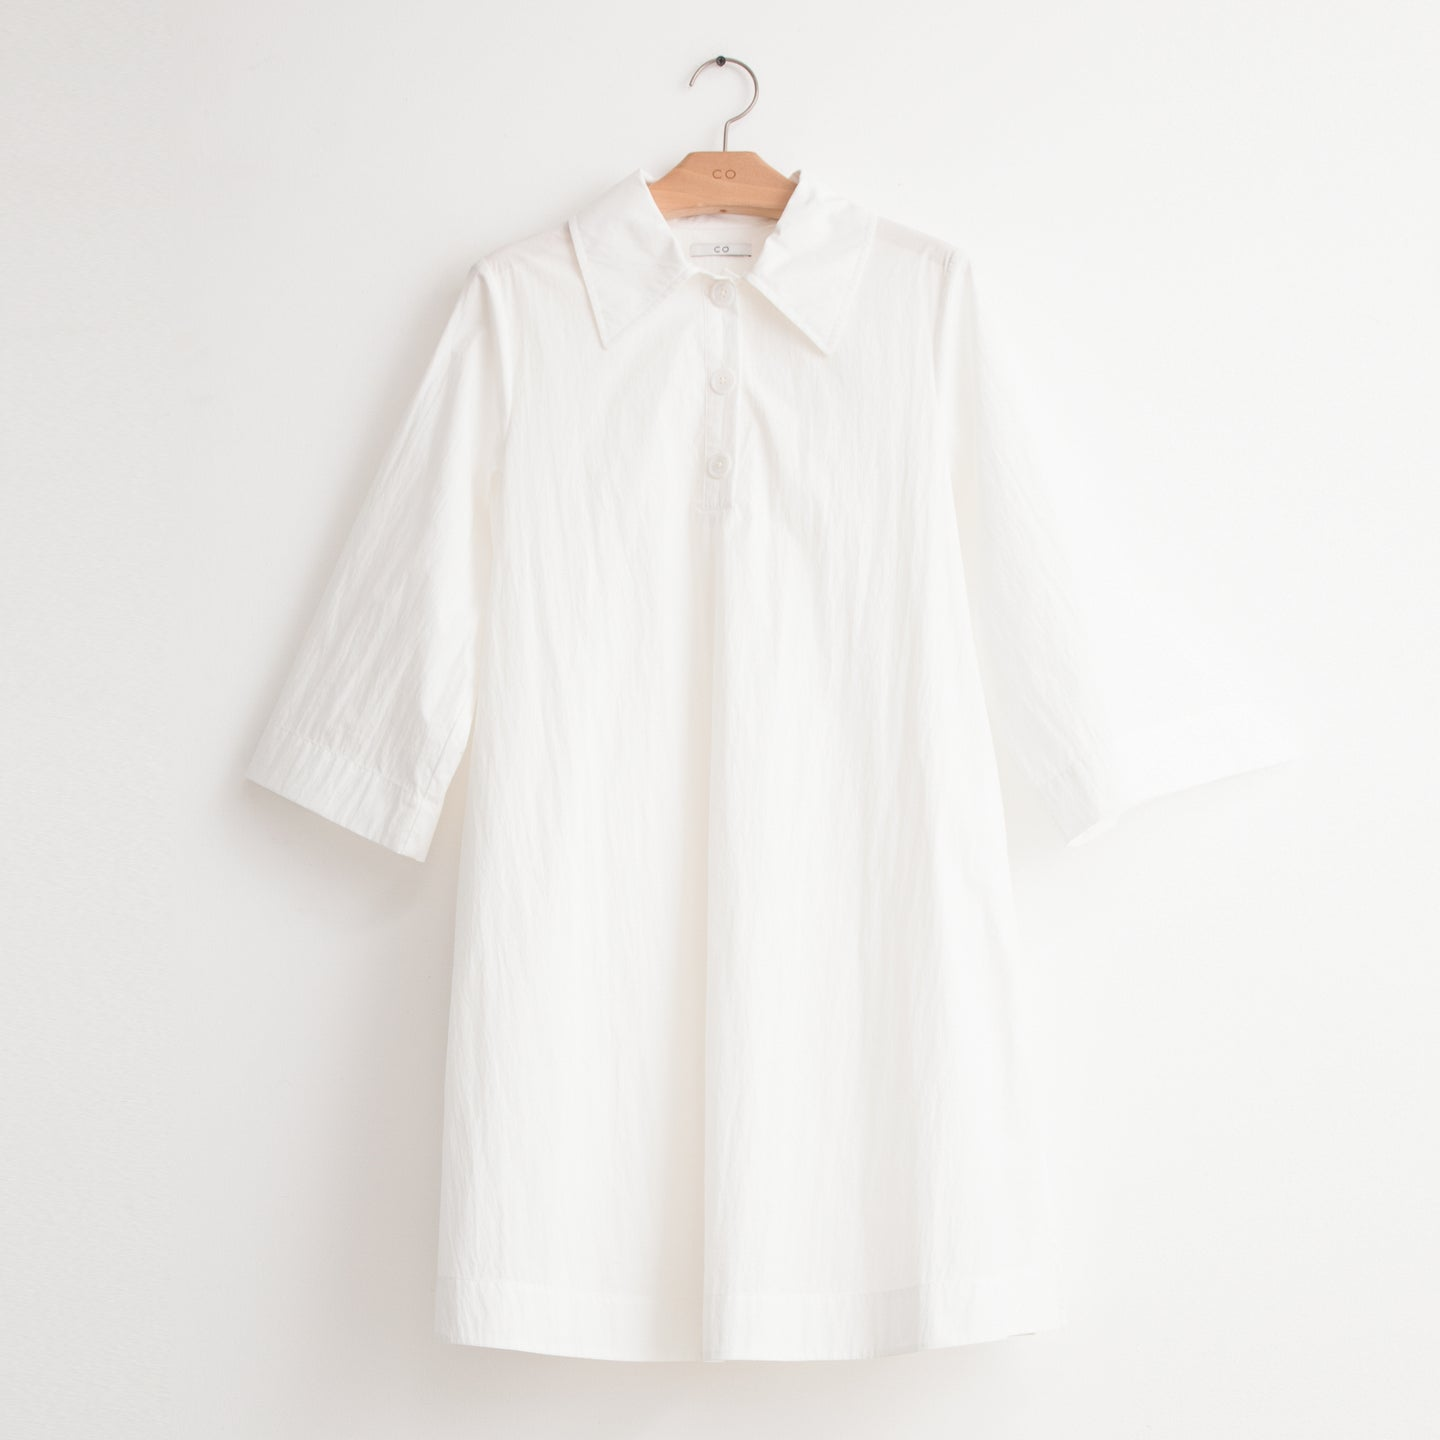 CO - Elbow sleeve tunic shirt in white lightweight cotton nylon